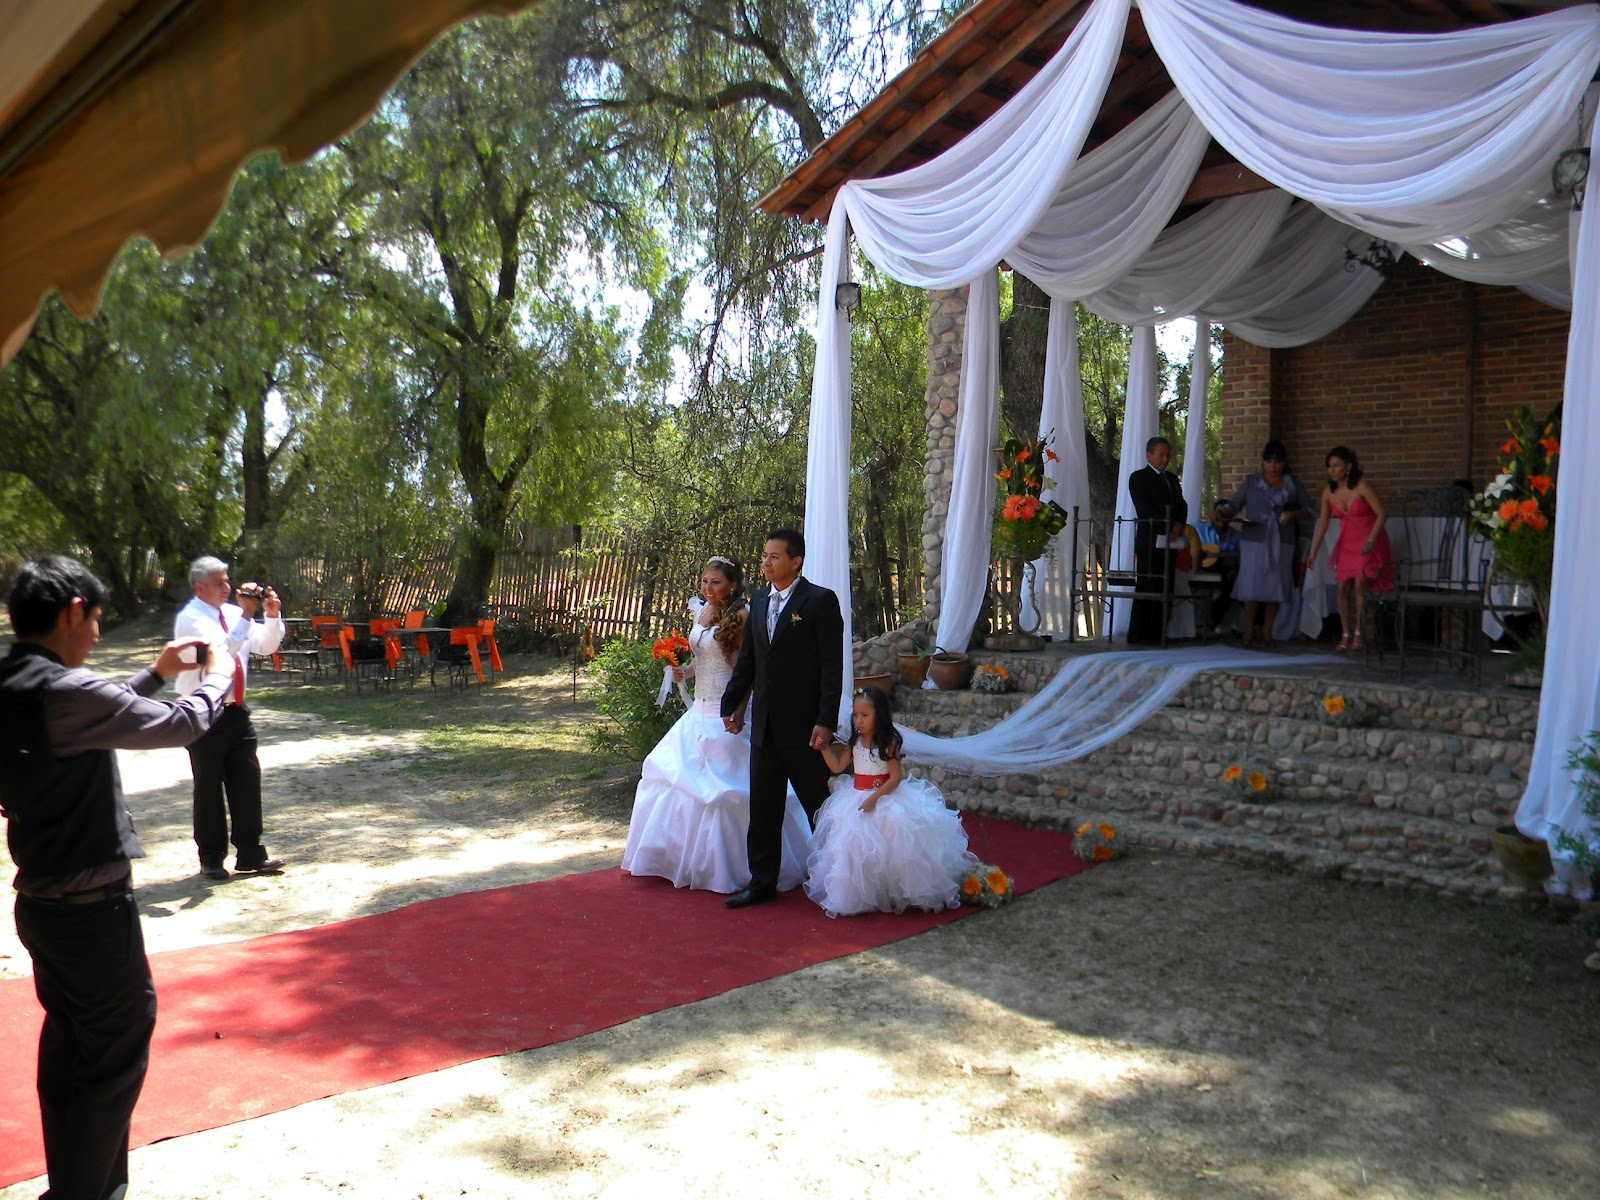 First Was The Religious Ceremony Later After Greeting Guests And Tail Hour There Civil As Well Which Terribly Long Boring